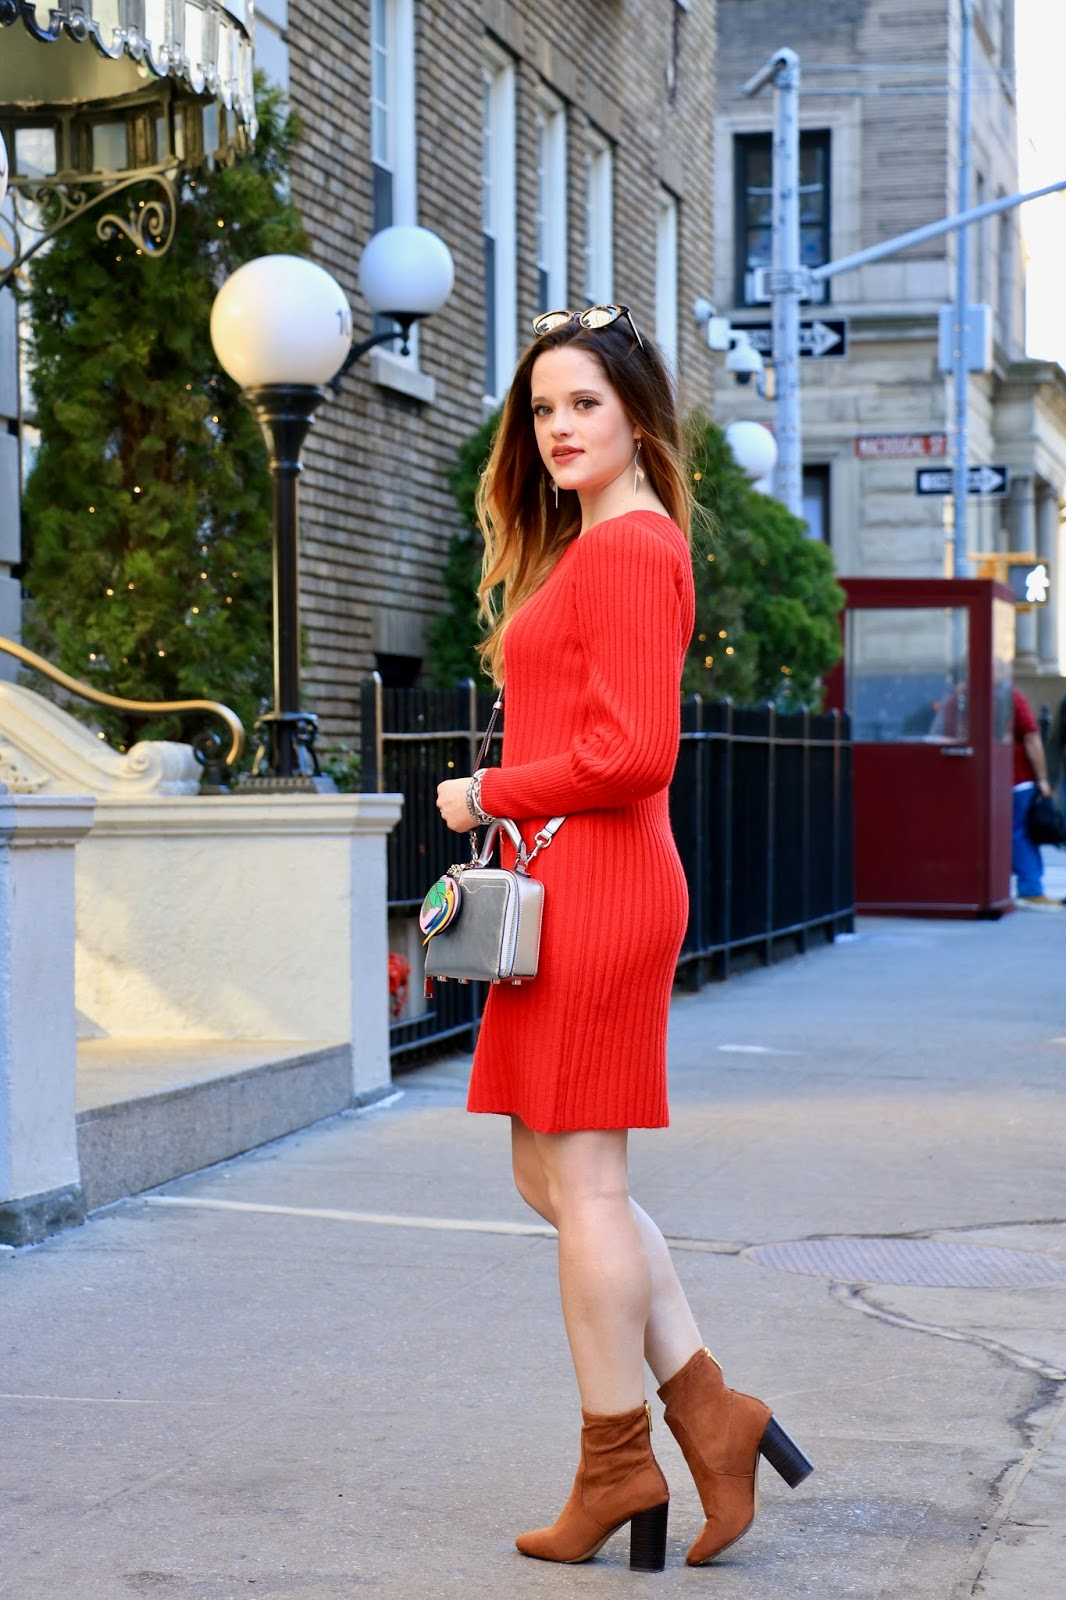 Nyc fashion blogger Kathleen Harper wearing a tight sweater dress